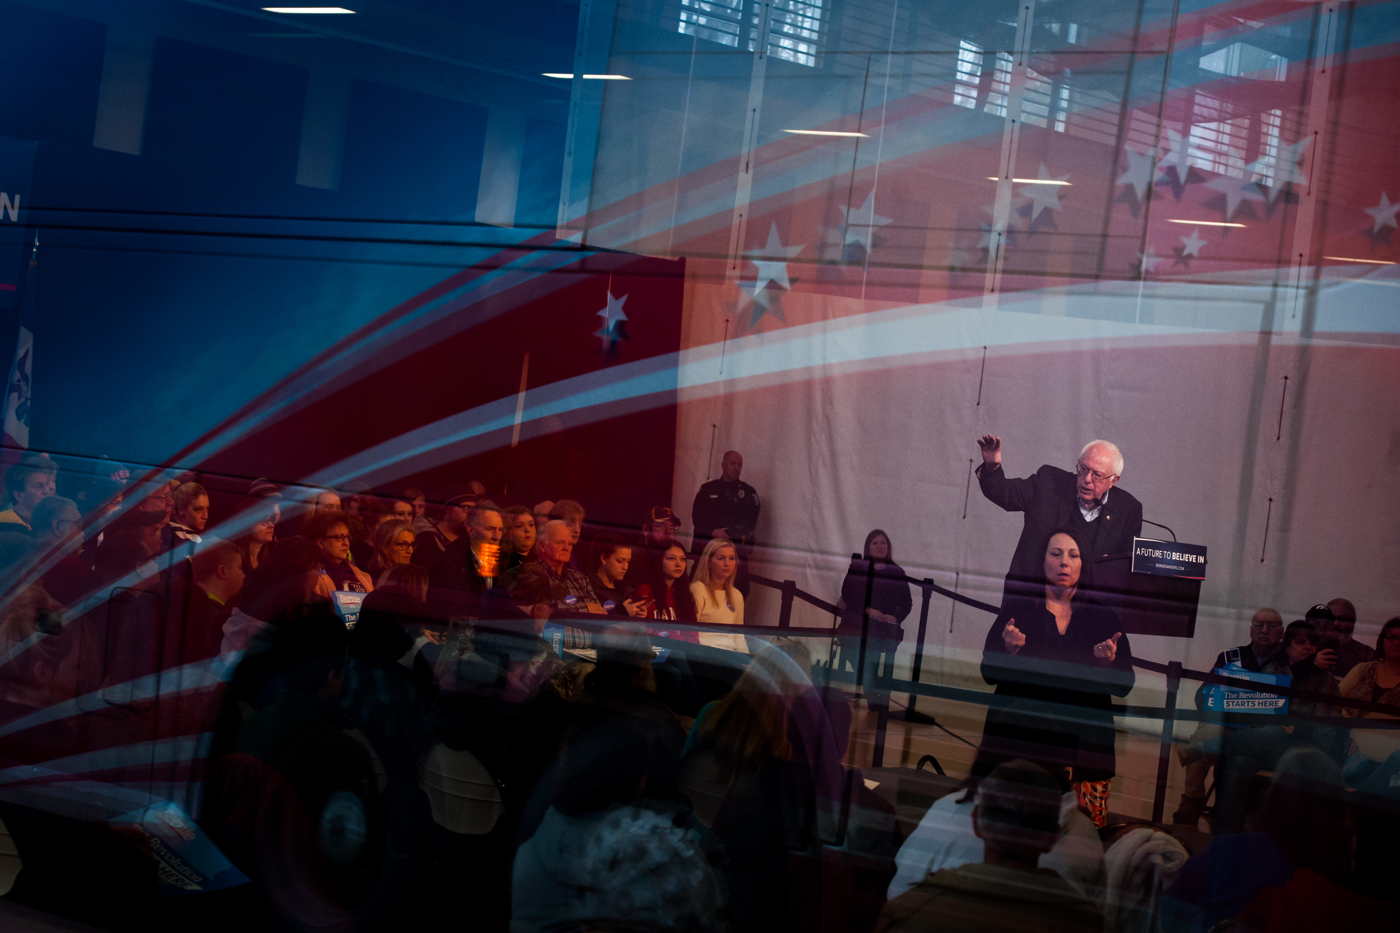 The reflection of the campaign bus for U.S. Democratic presidential candidate Bernie Sanders is reflected in a window as he speaks at a town hall in Iowa Falls, Iowa January 25, 2016.